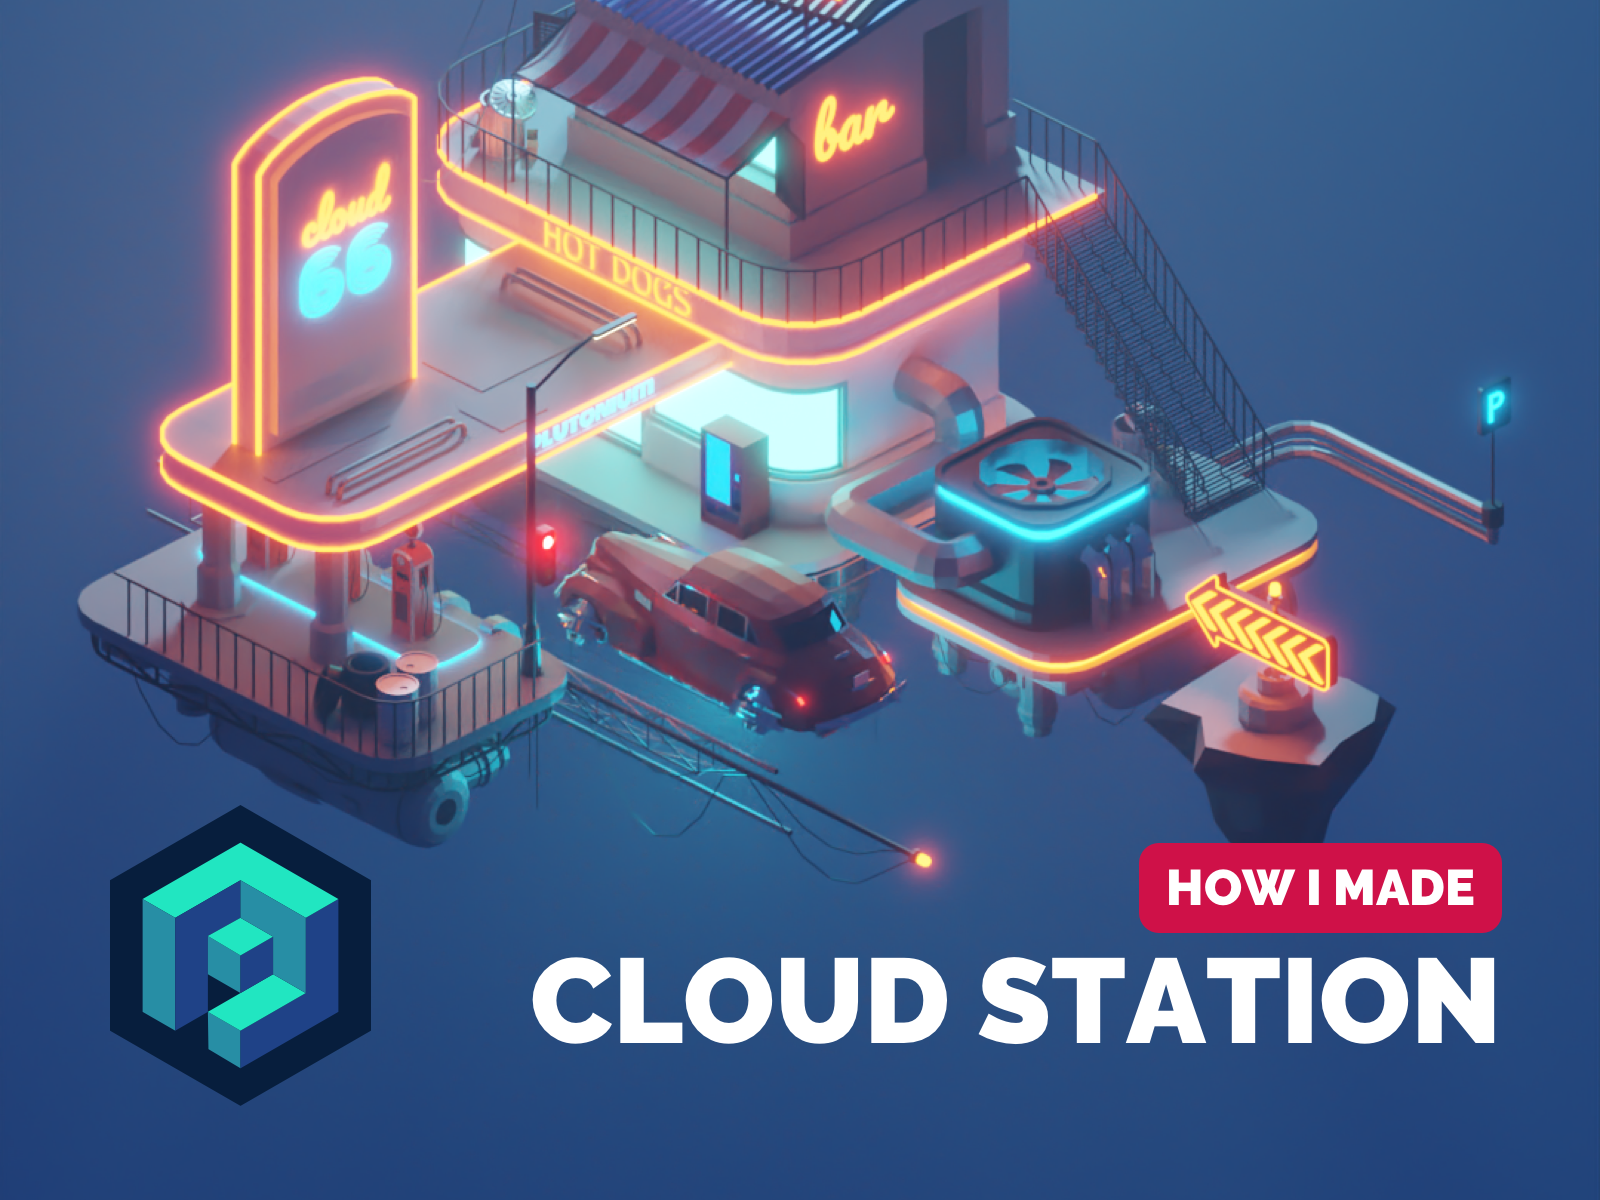 Cloud station tut drib